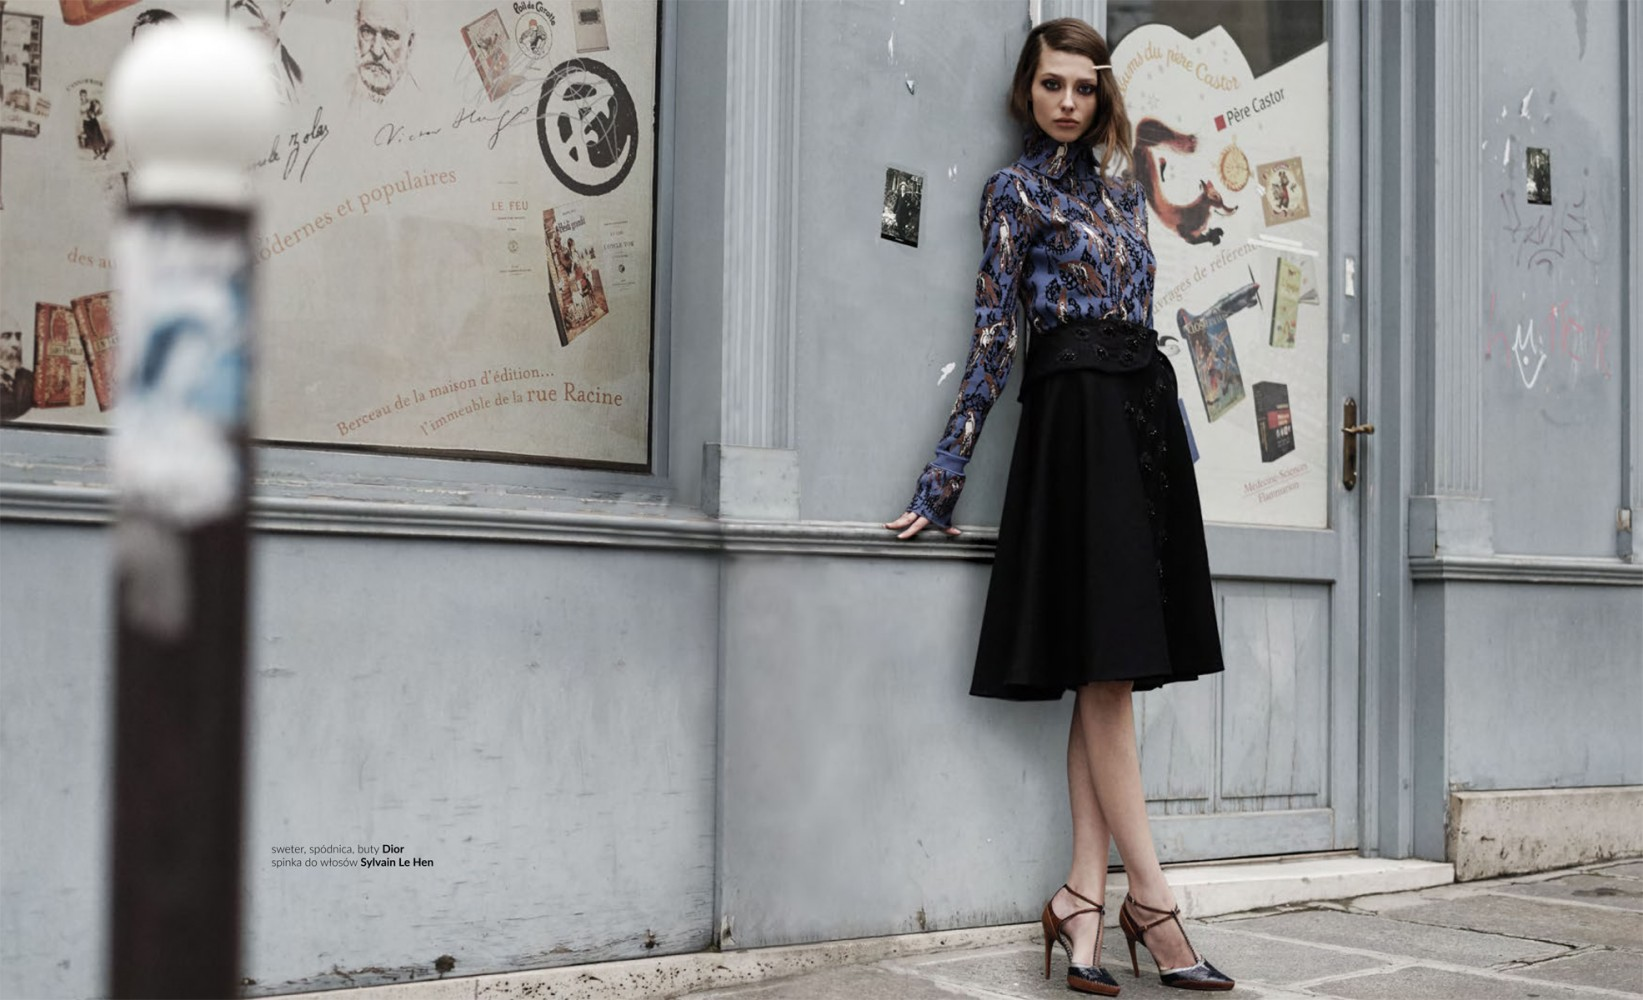 Fashion_mag_Leica_(c)CG_4